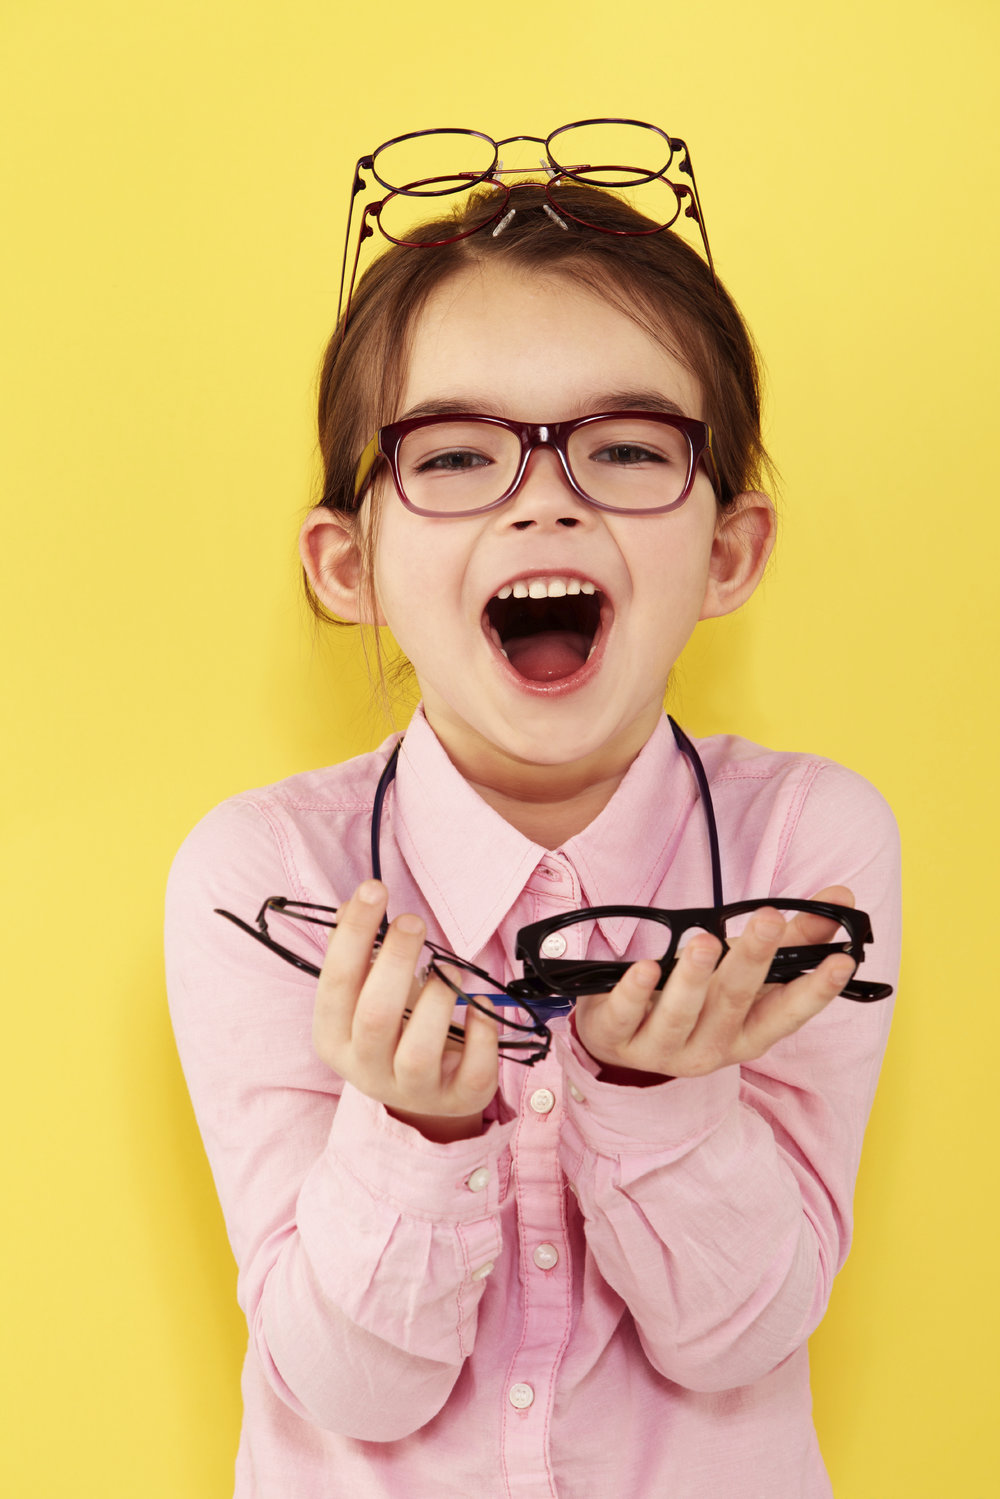 KIDS GLASSES - STARTING AT ONLY $99